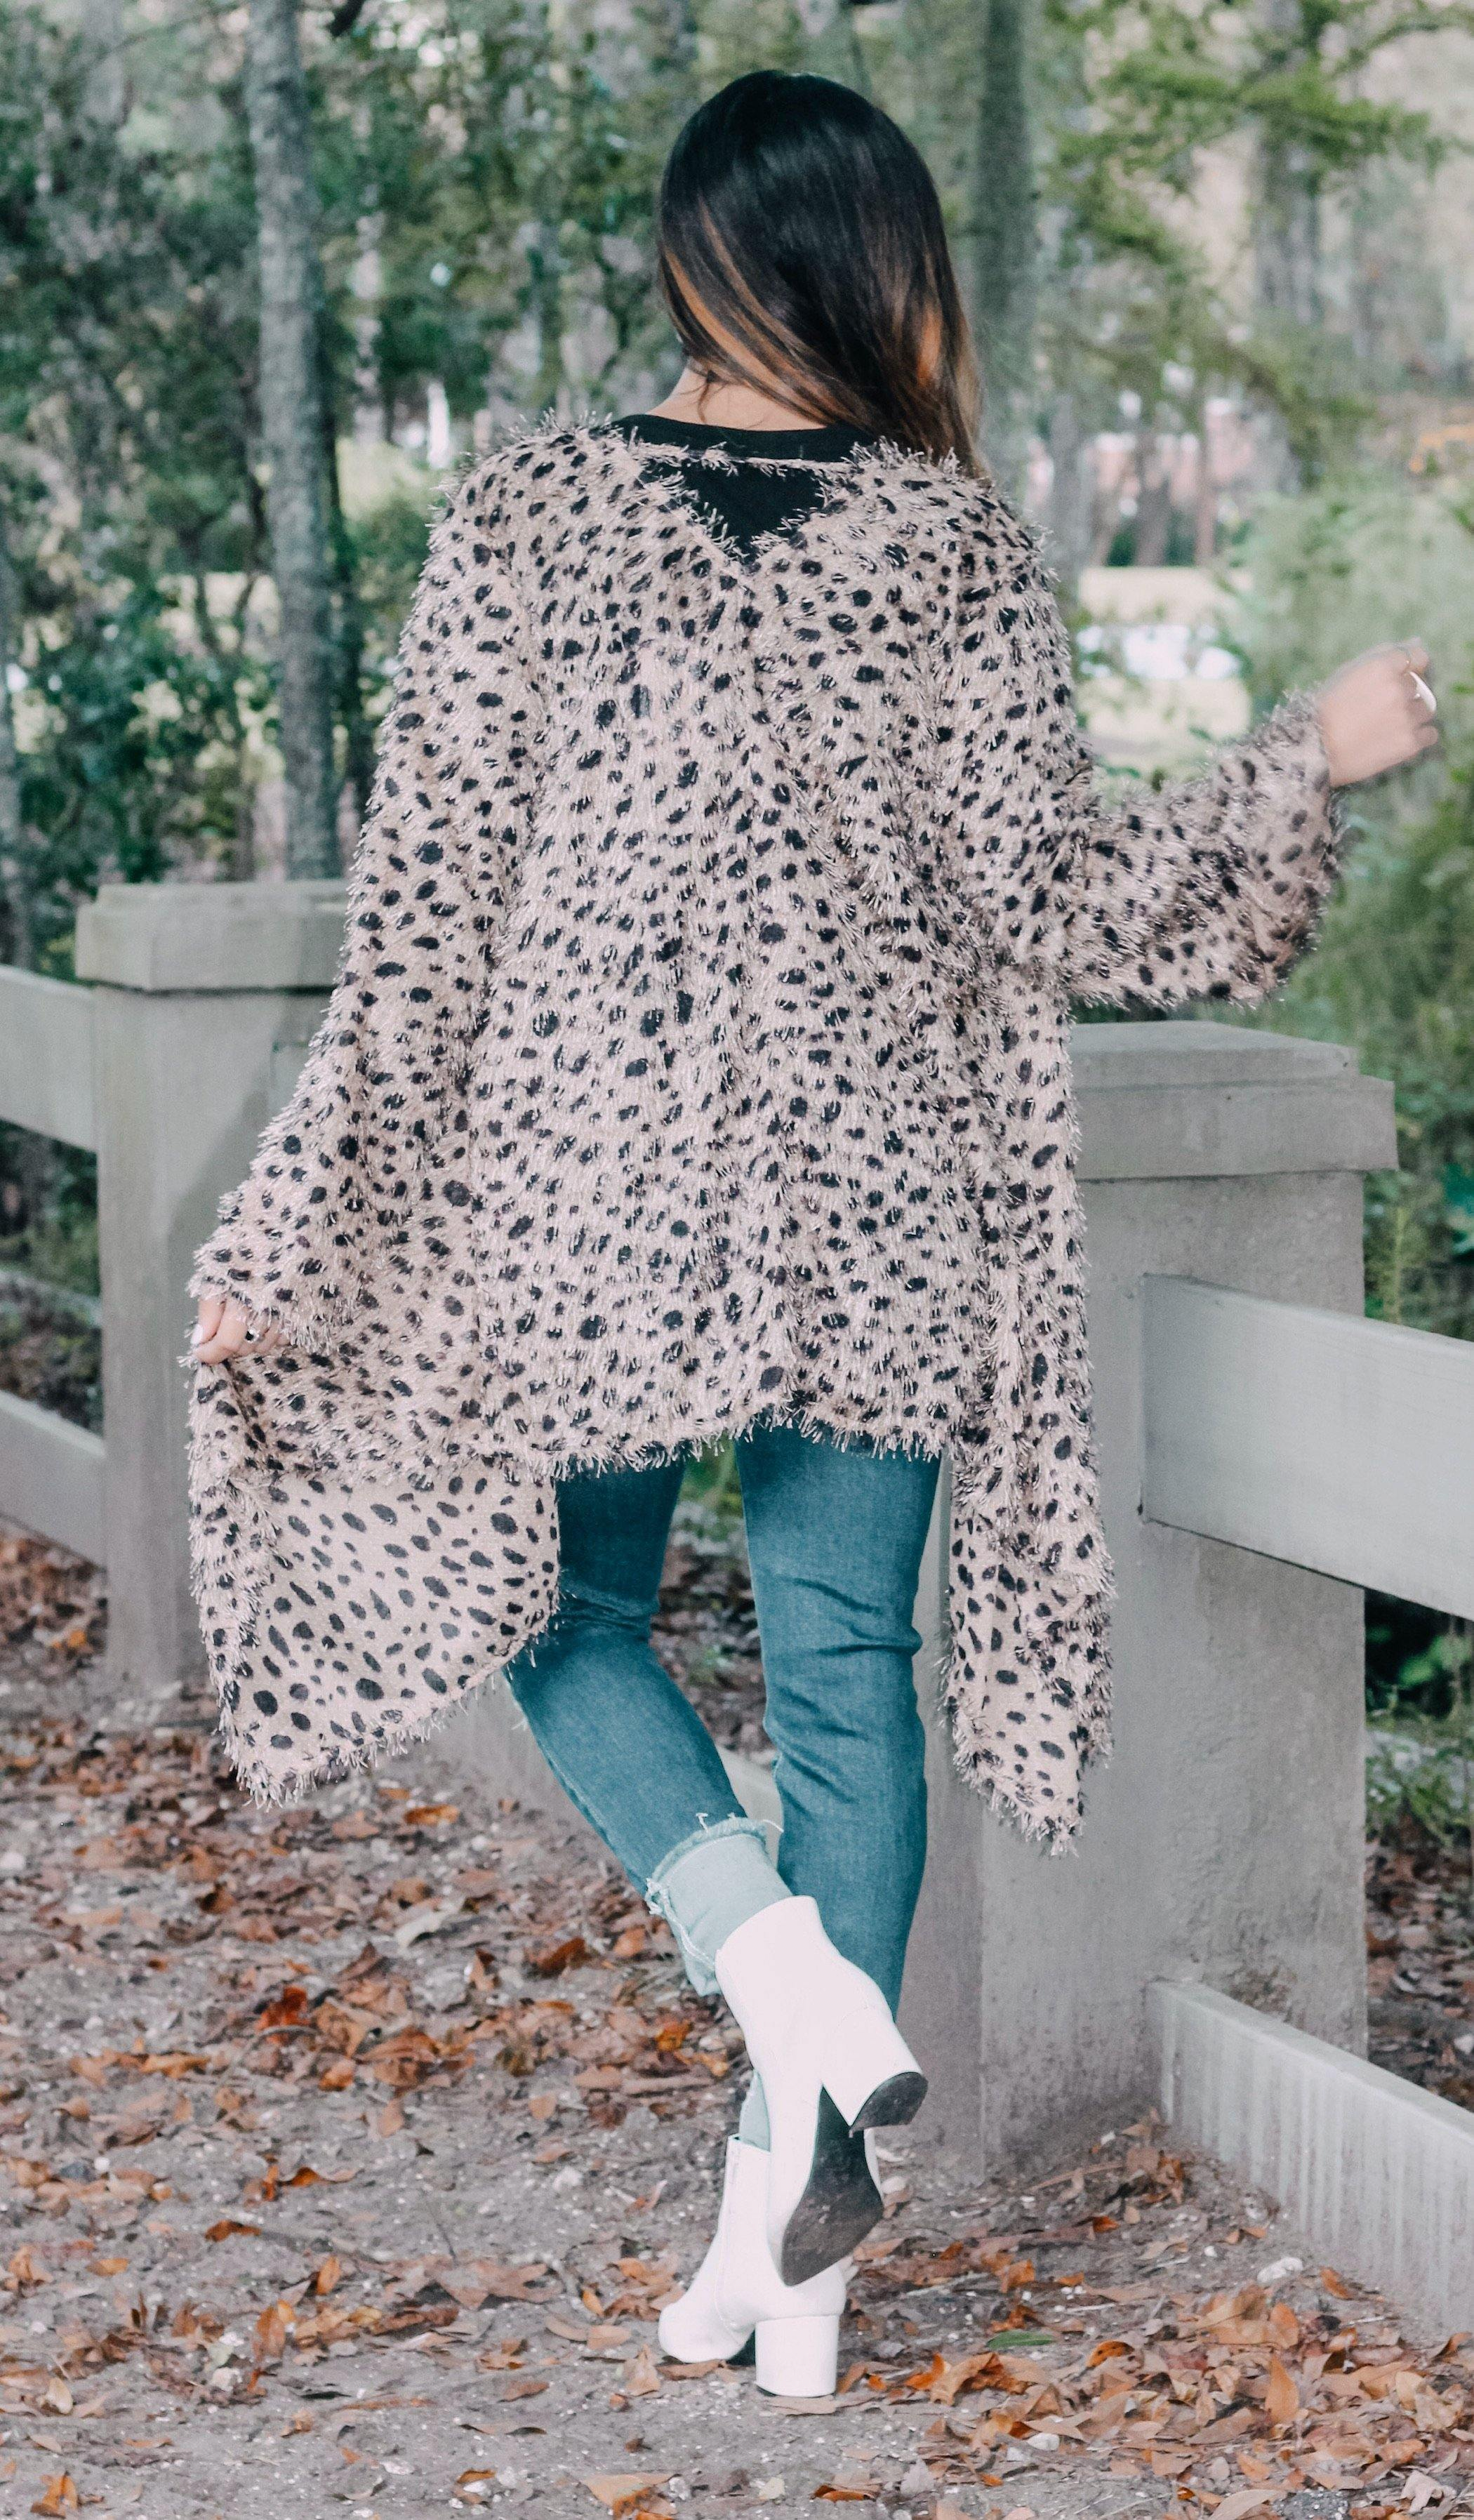 ANIMAL PRINT FUZZY CARDIGAN - elbie boutique, LLC